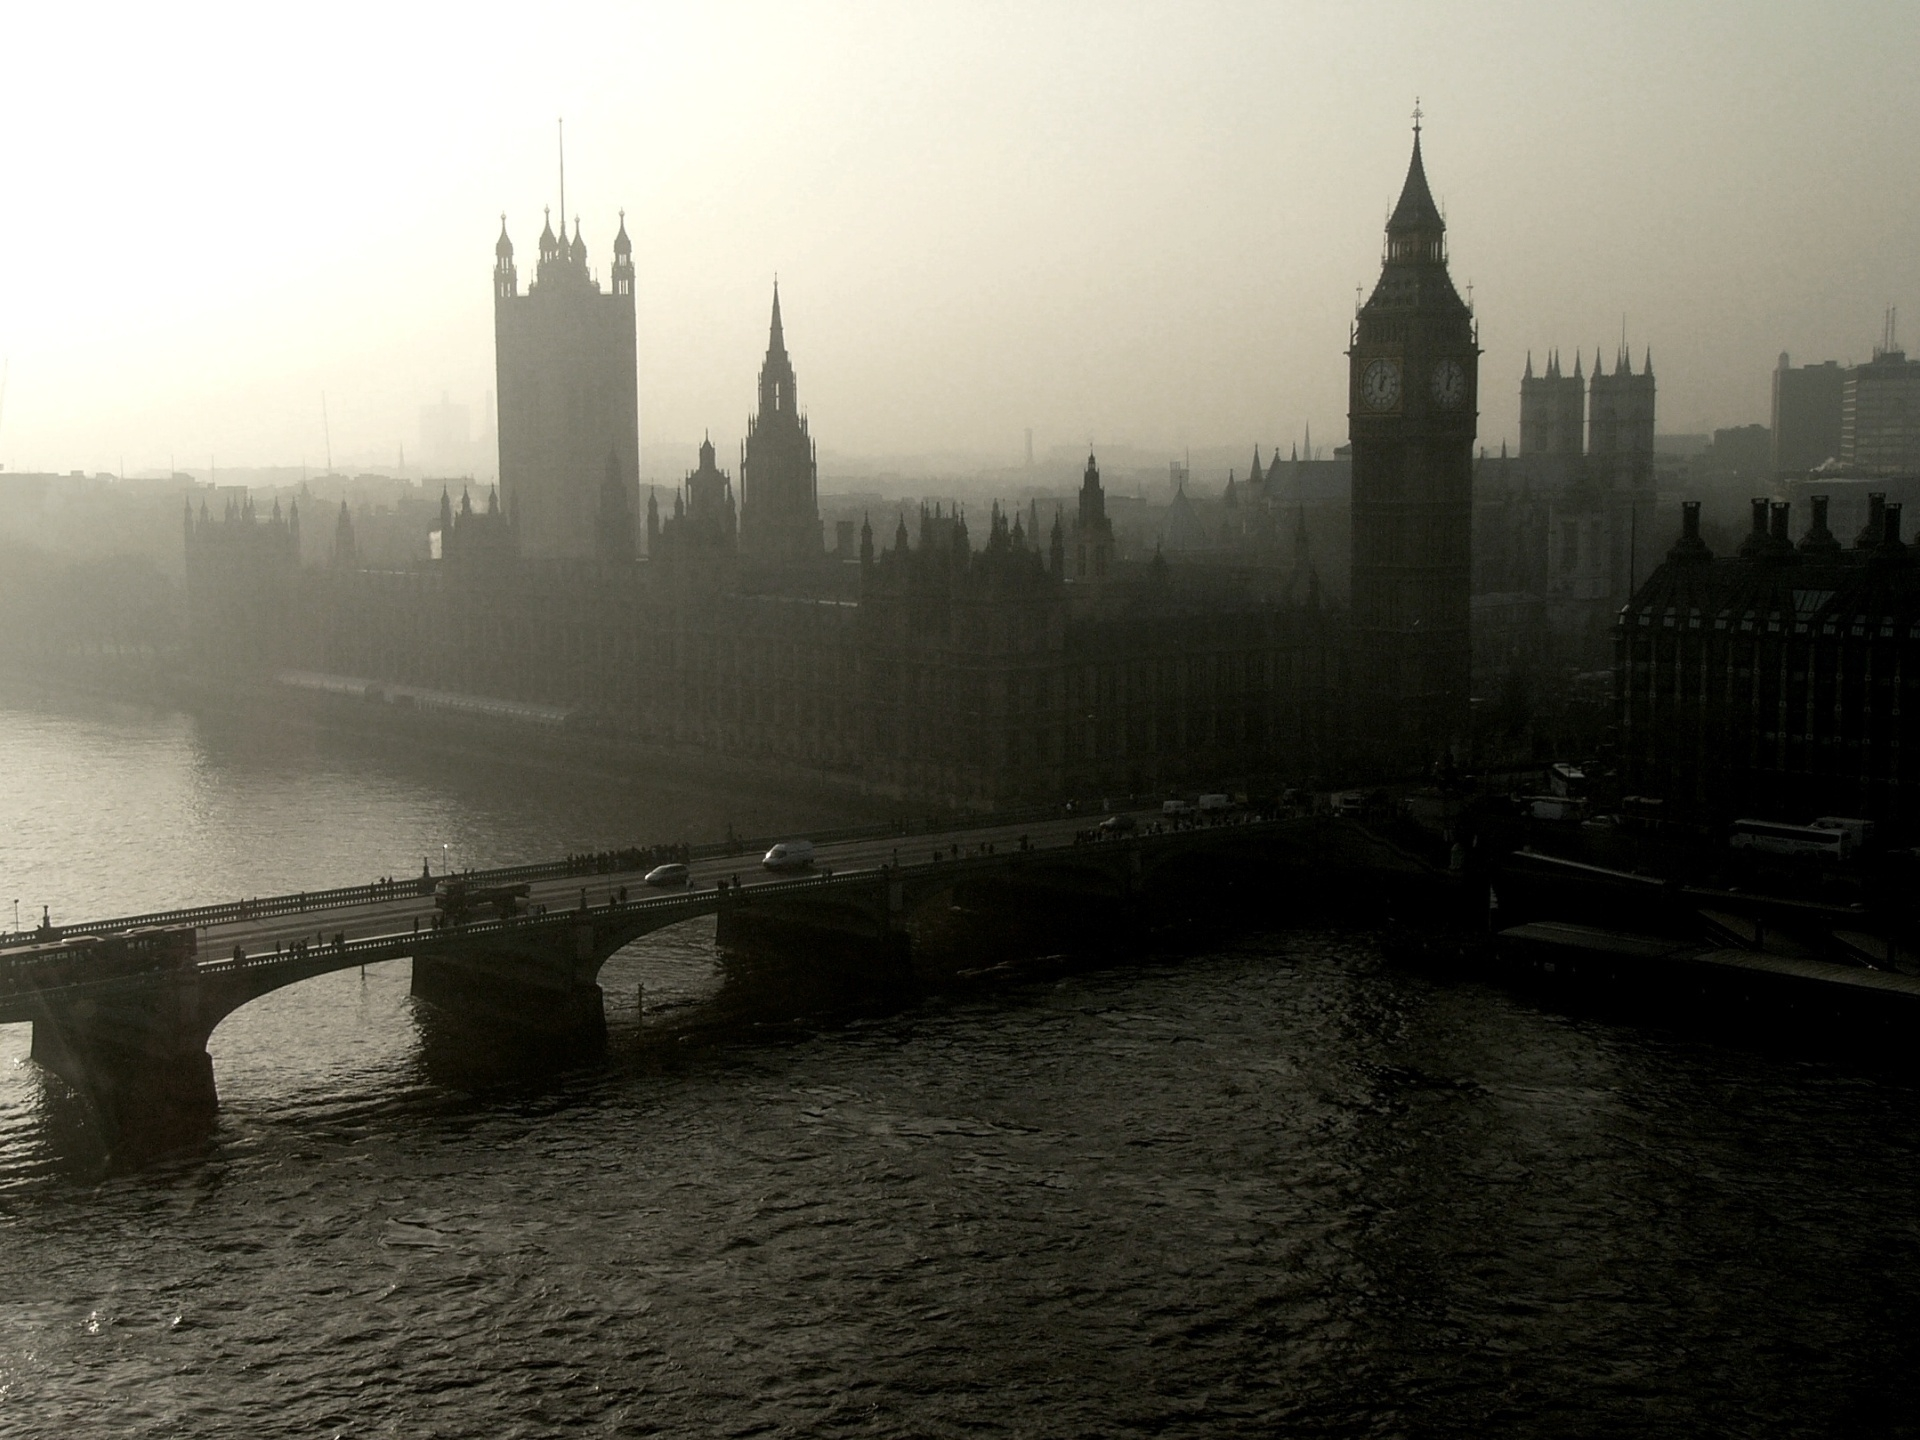 118686 download wallpaper Panorama, City, London, Palace Of Westminster, Bridge, Rivers, Thames, Tower, Big Ben, Cities screensavers and pictures for free